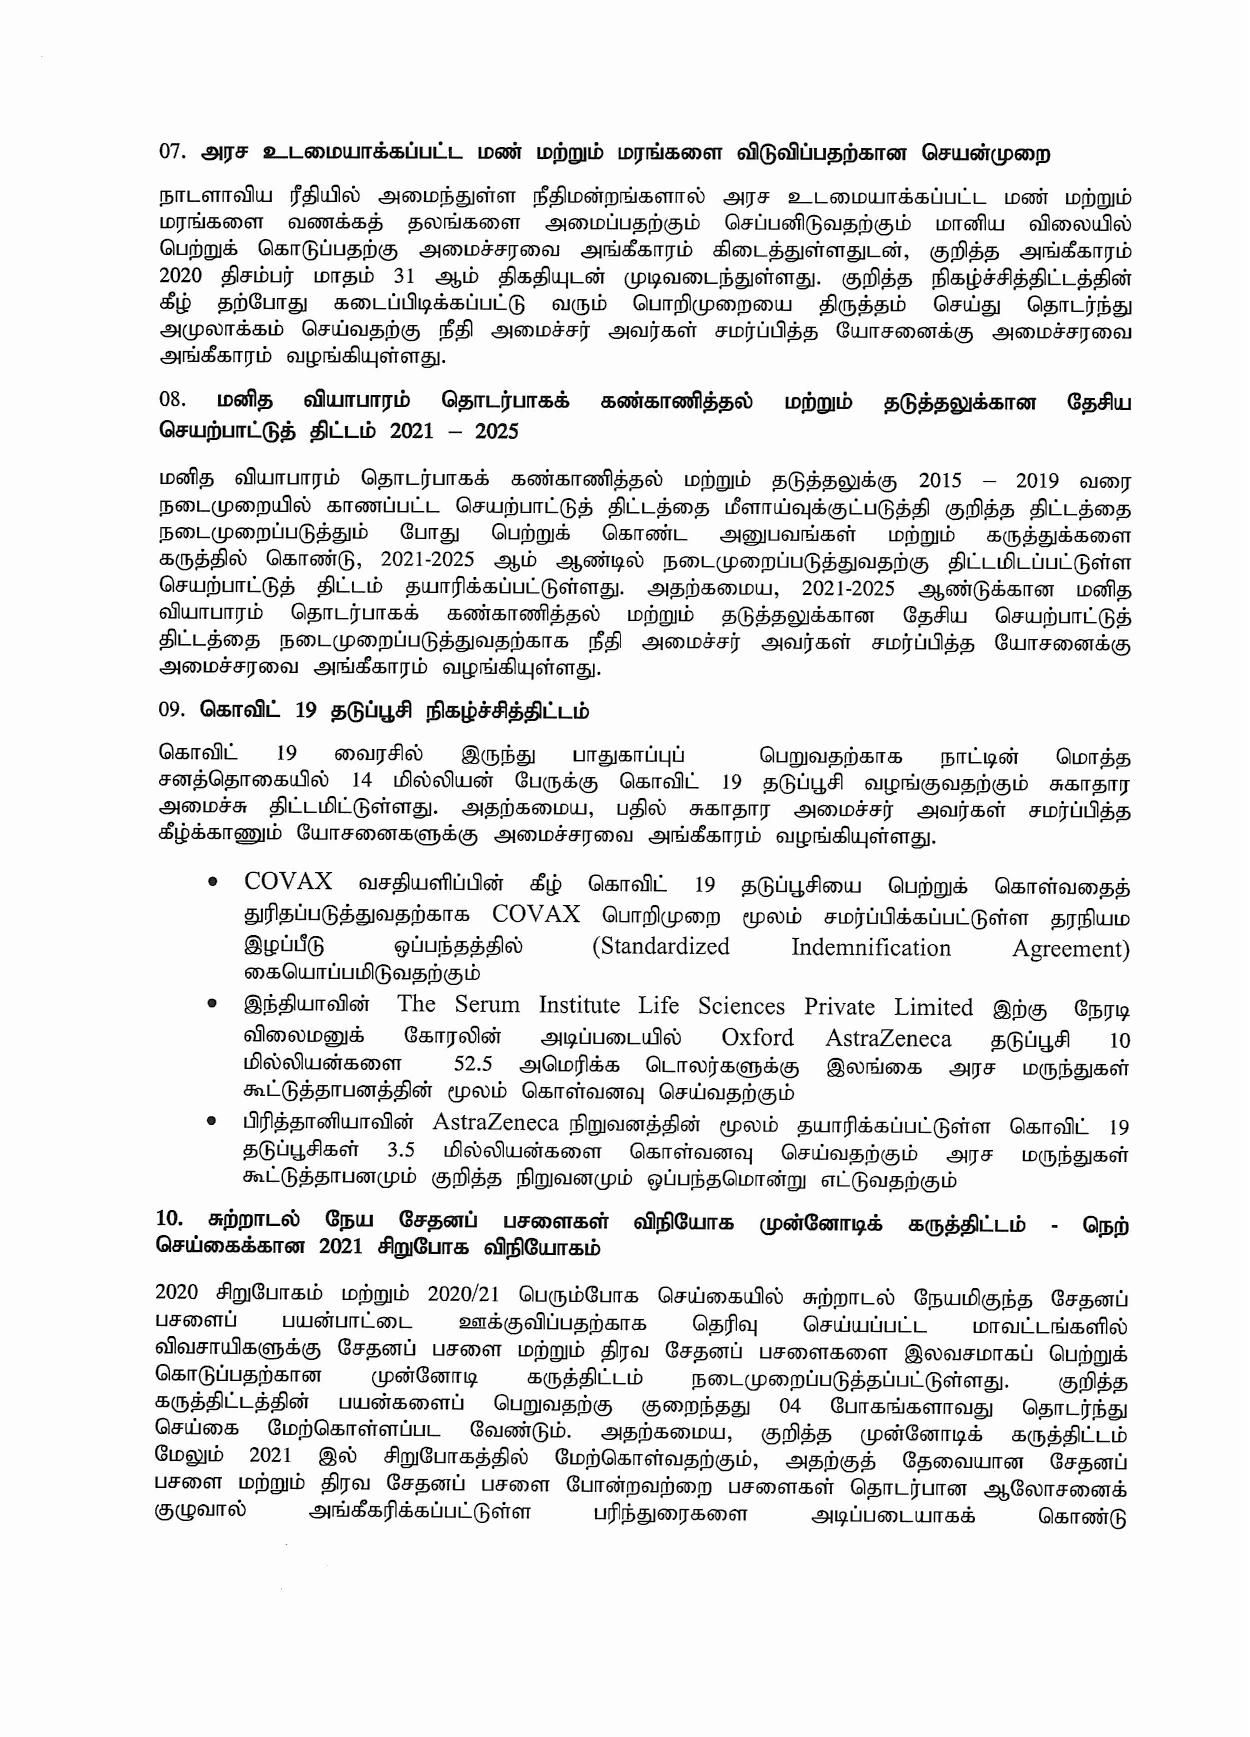 Cabinet Decision on 22.02.2021 Tamil page 003